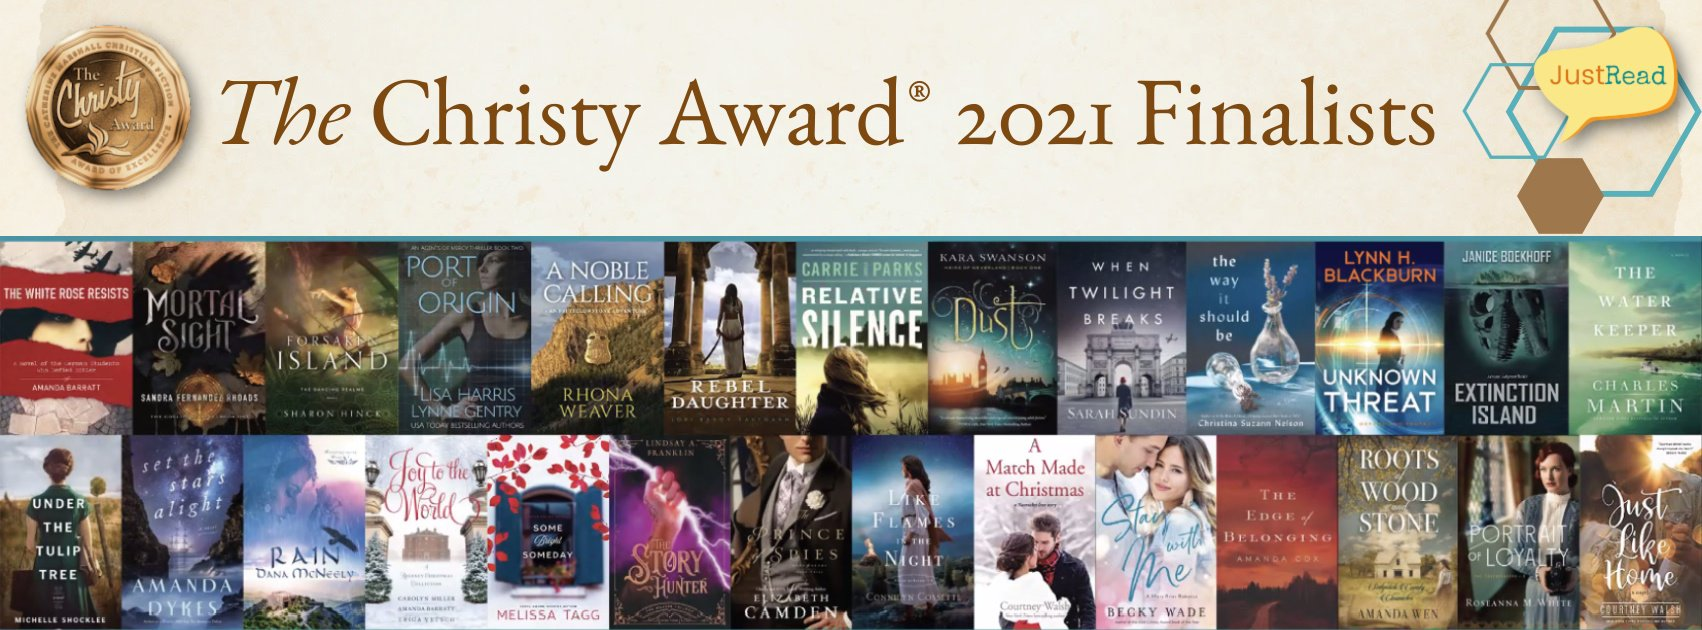 The Christy Award 2021 Finalists on JustRead